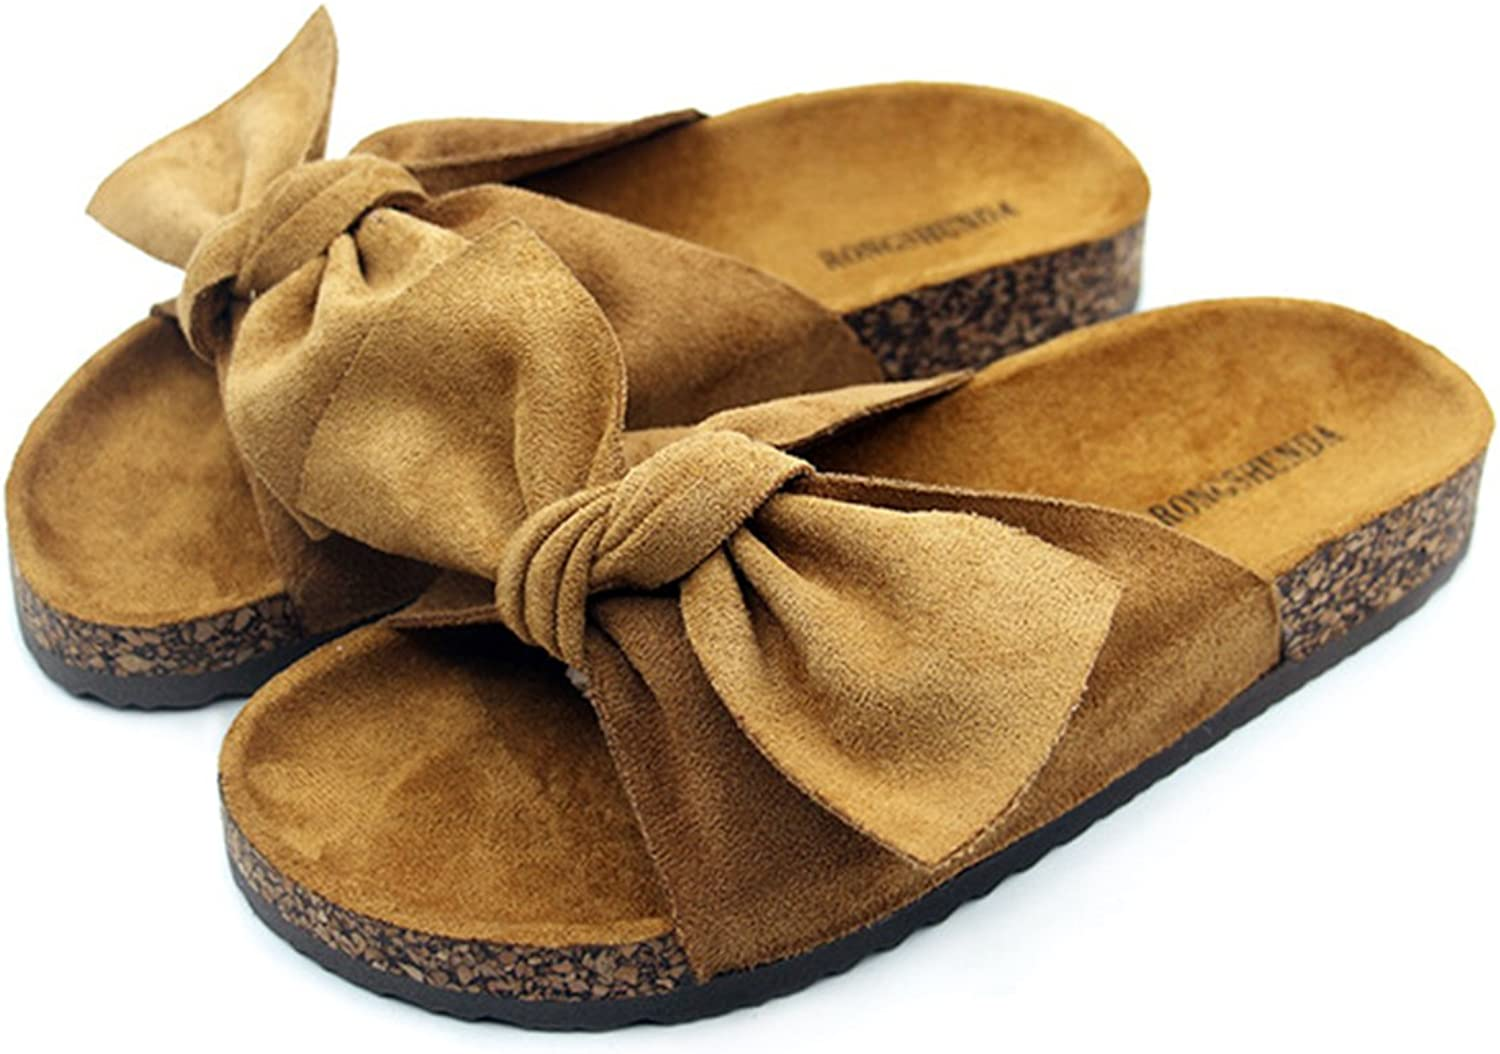 Mageed Women Slippers with Big Bow Suede Leather Female Slippers Sweet Slides for Cork Wood Sole Sandals